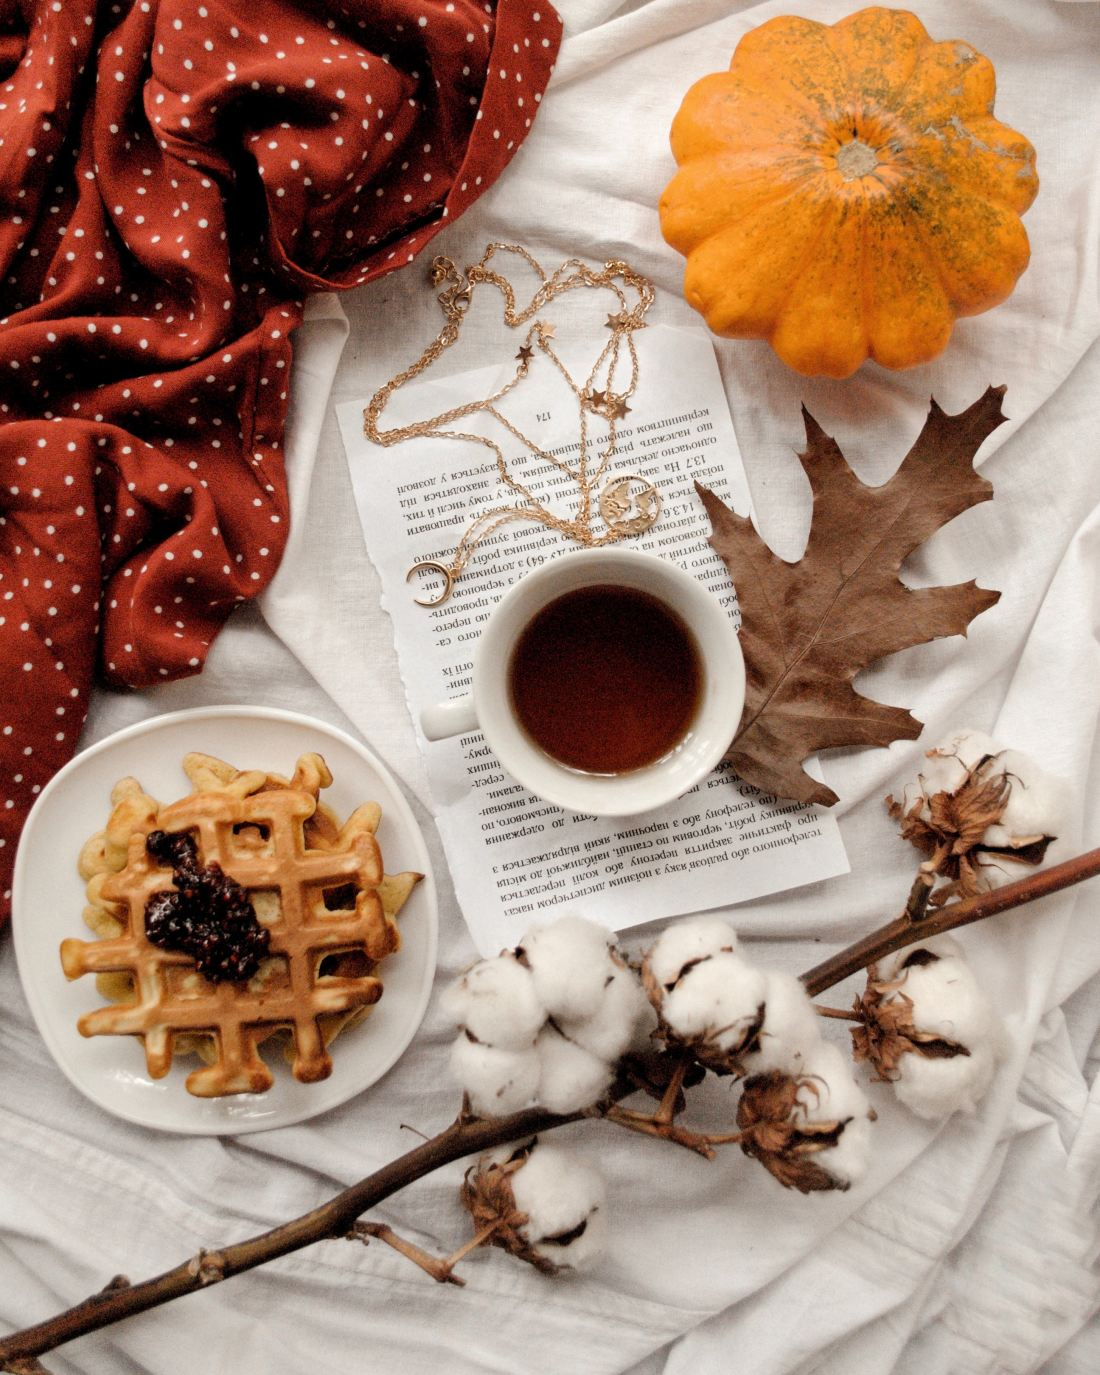 Feisty Life Media\'s editorial theme for November is comfy-cozy. Stay tuned for posts on #hygeelife, easy comfort food, and more! #feistylifemedia